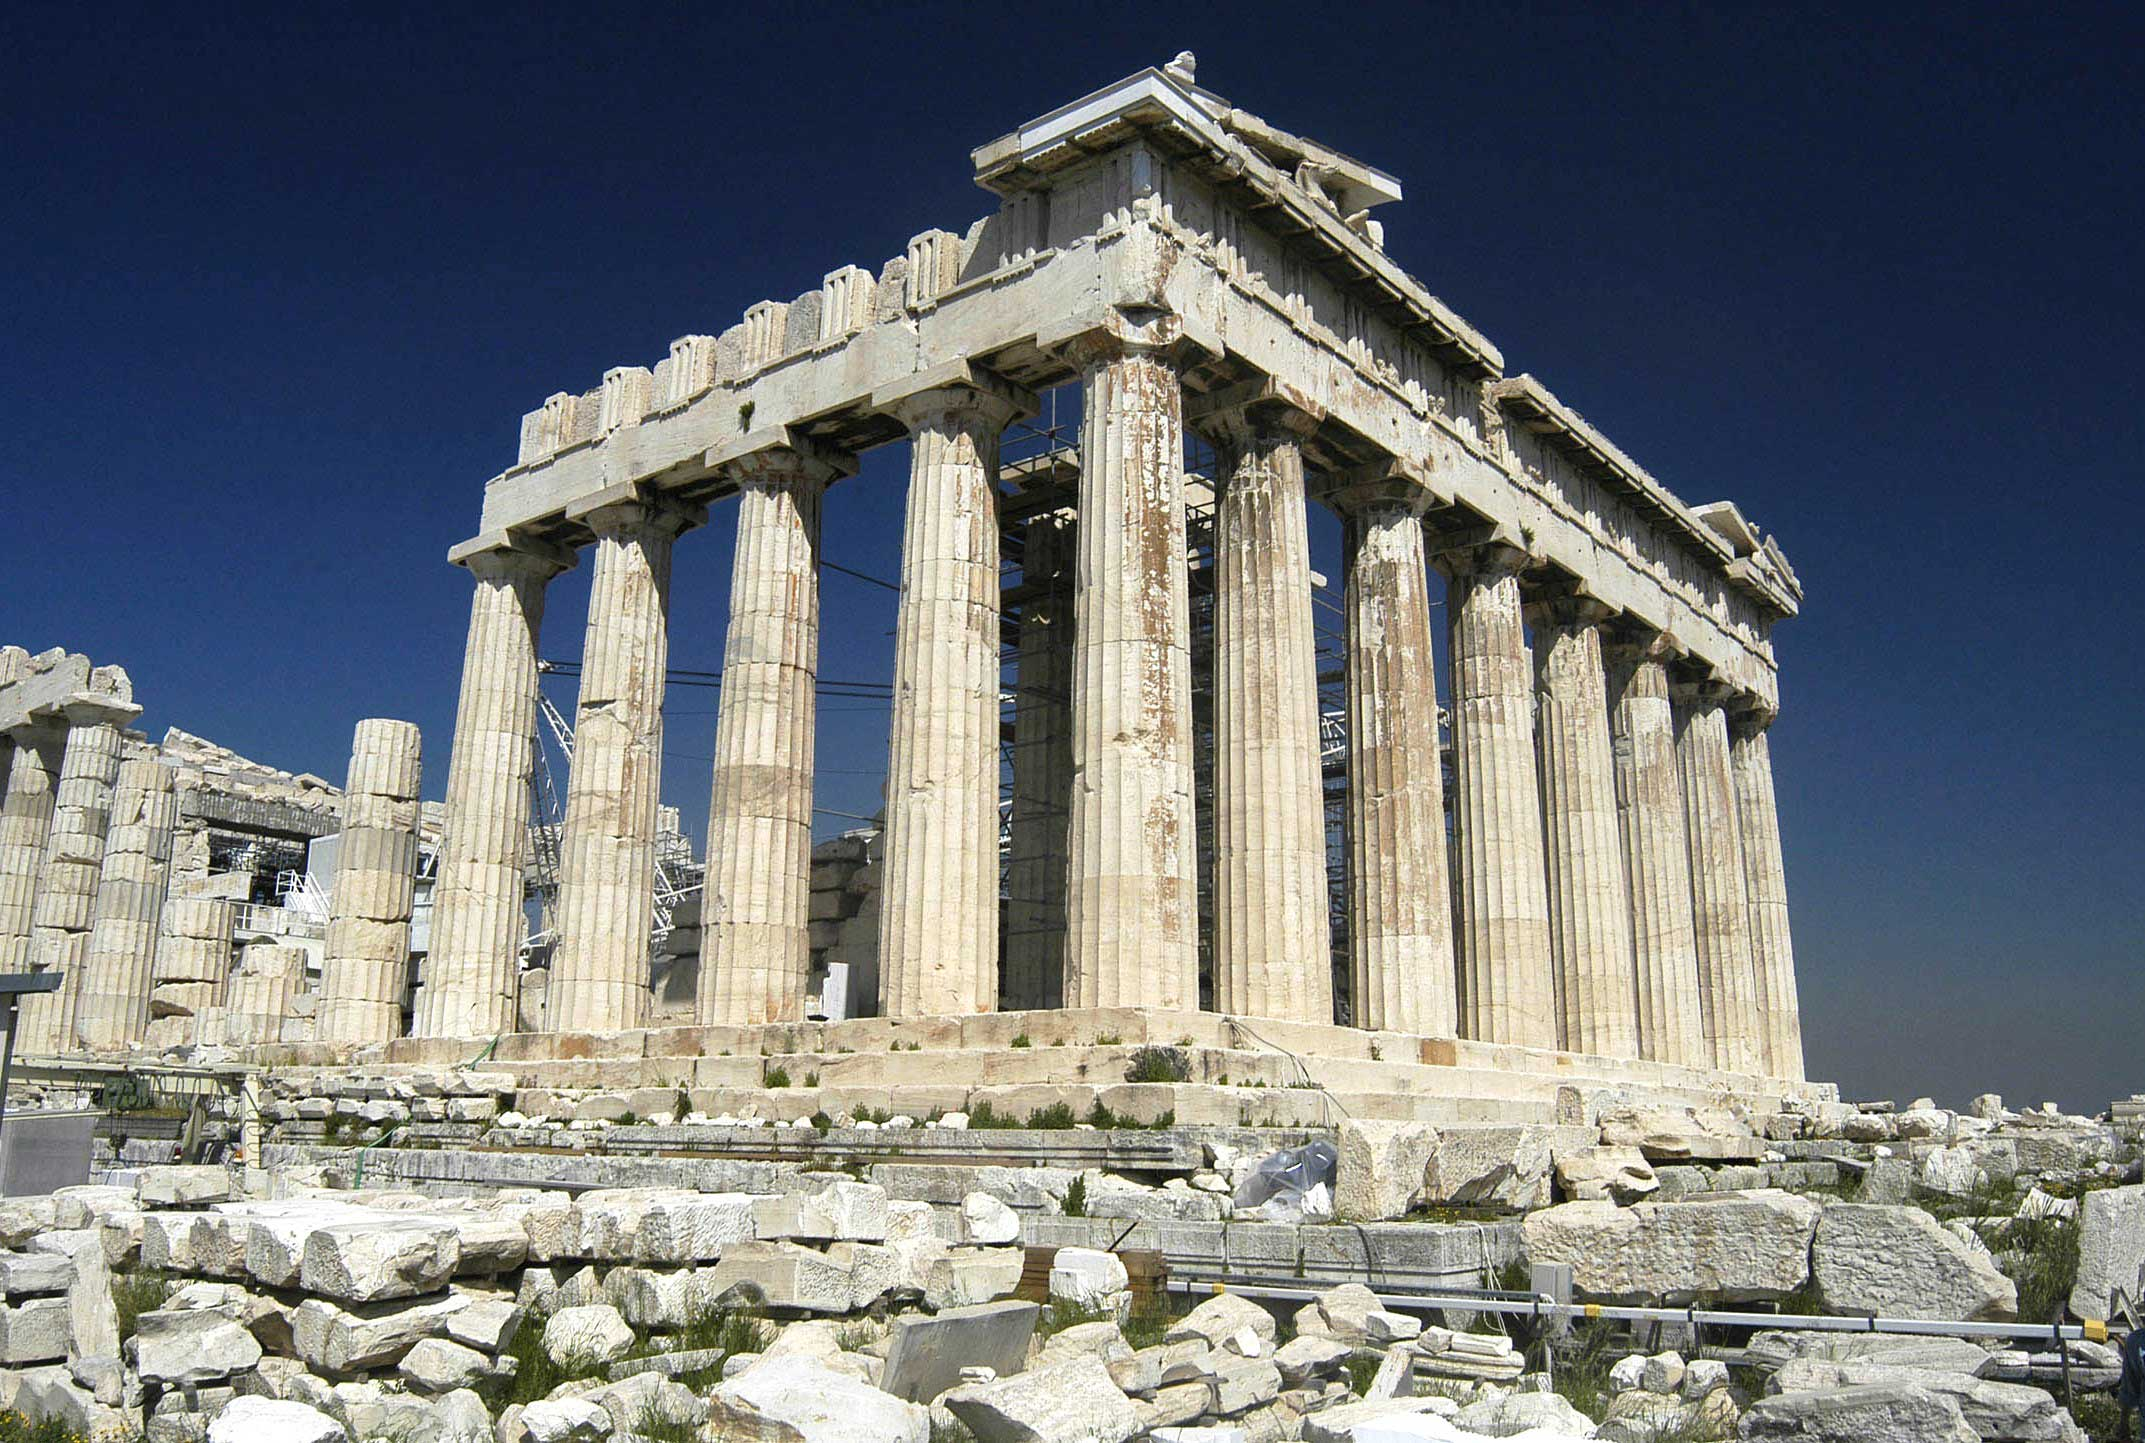 Cruise Med: MedCruise is the partner for Royal Princess Mediterranean sailings. Pictured is the iconic Acropolis in Athens.